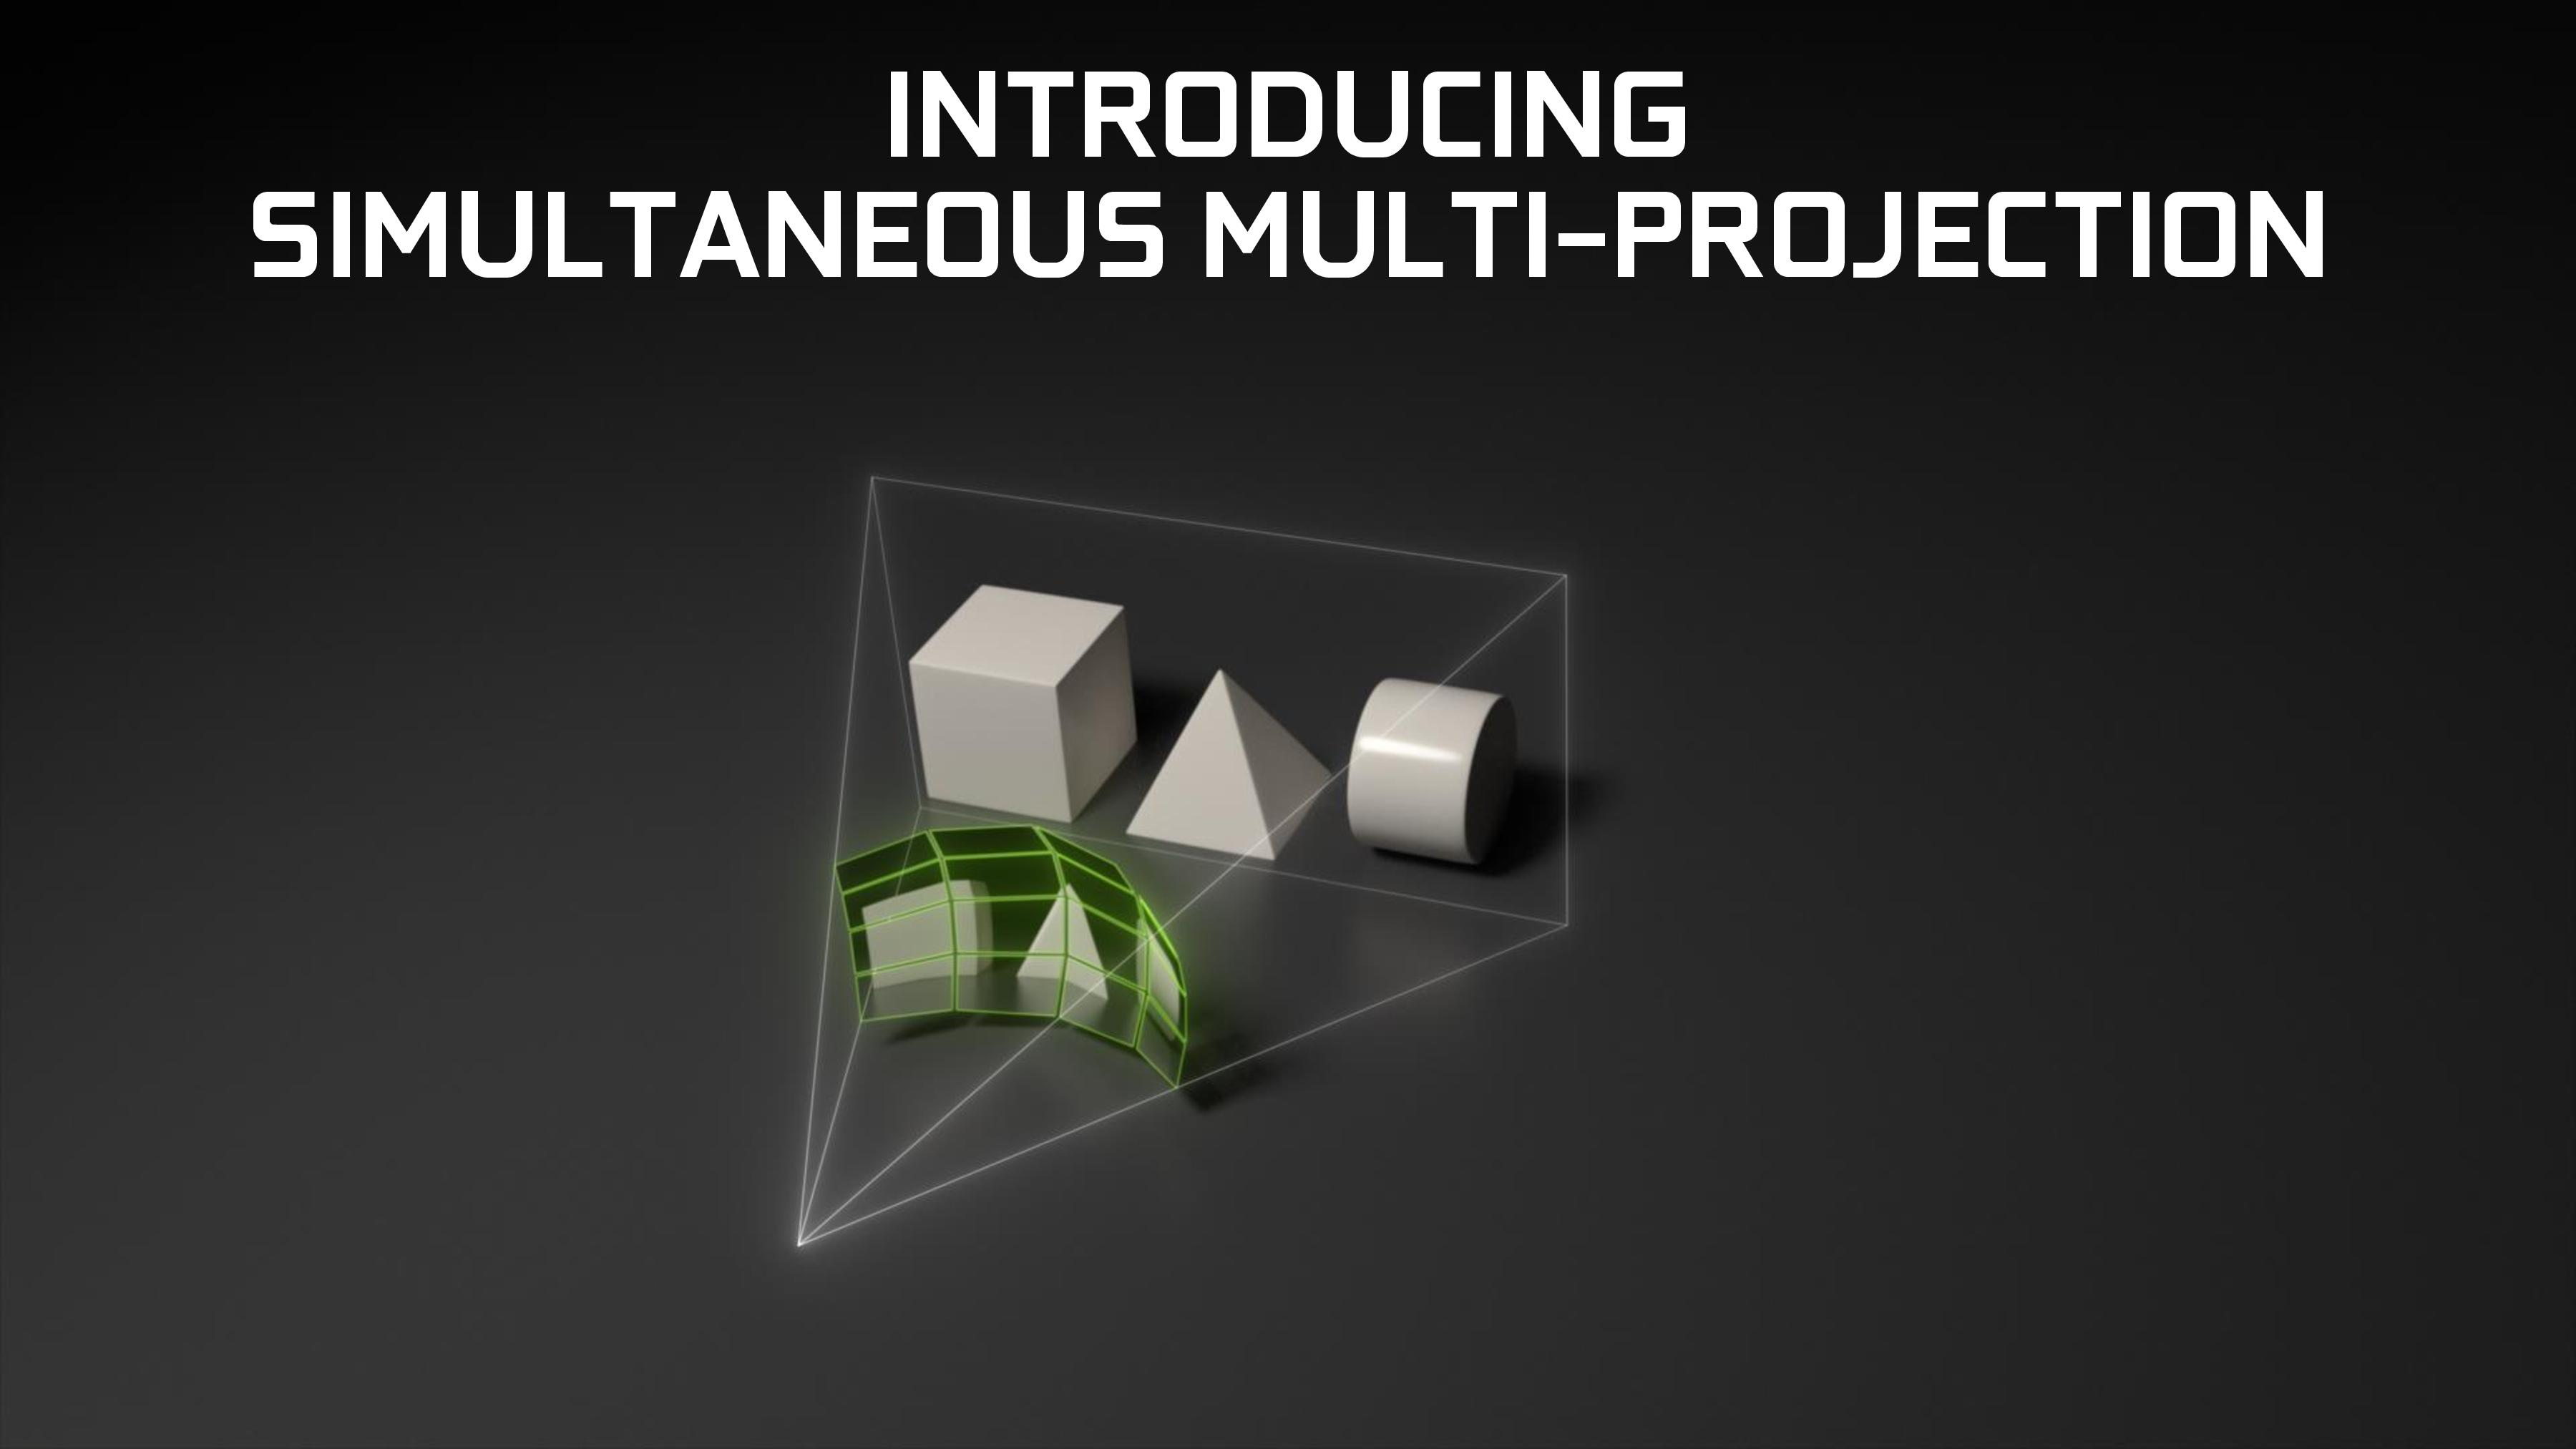 Here\'s How NVIDIA\'s Simultaneous Multi-Projection Can Benefit 4K Gaming